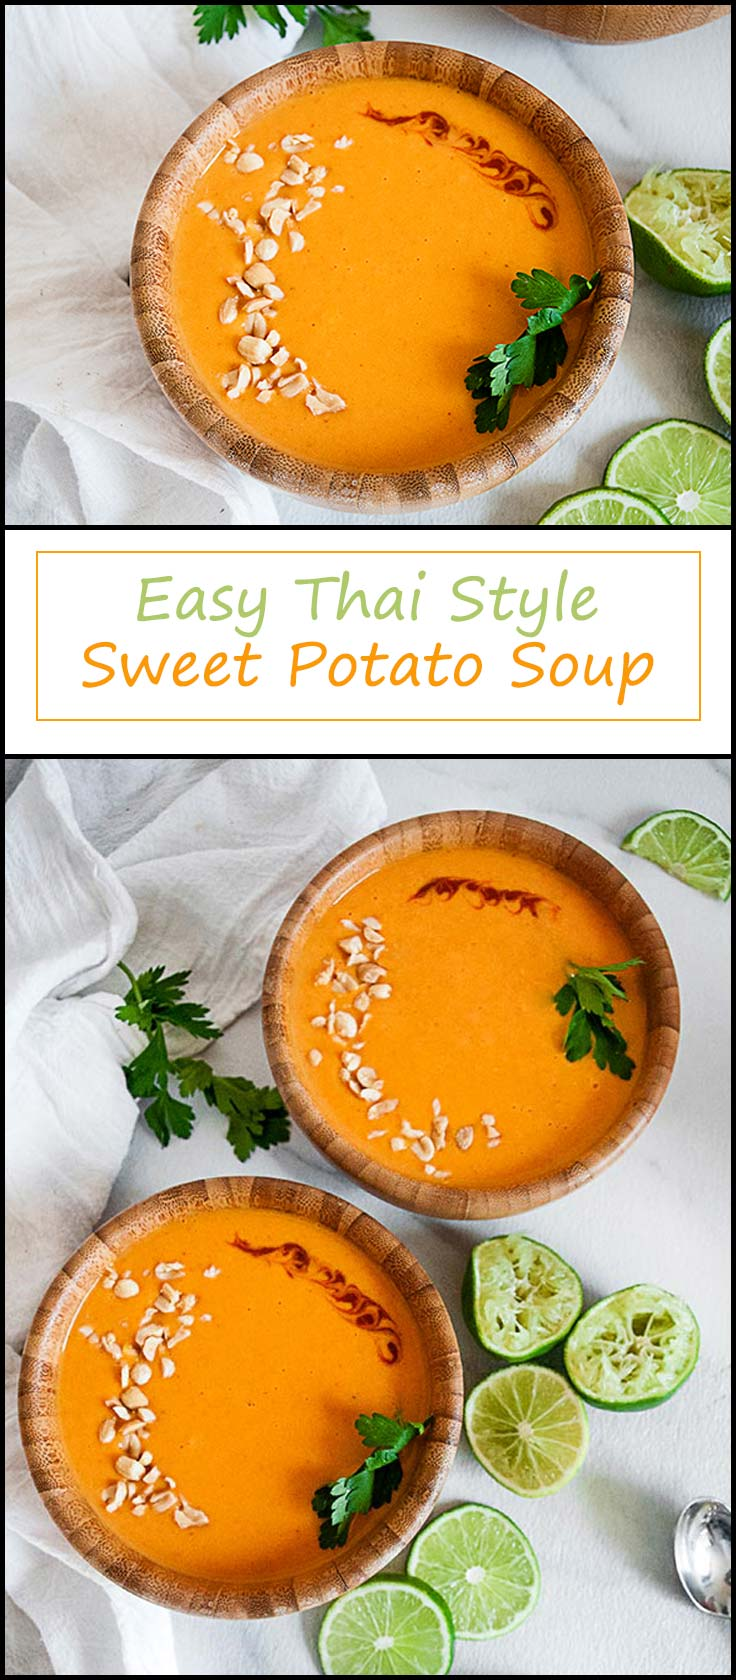 Thai Sweet Potato Soup that can be made totally in the microwave from www.seasonedsprinkles.com